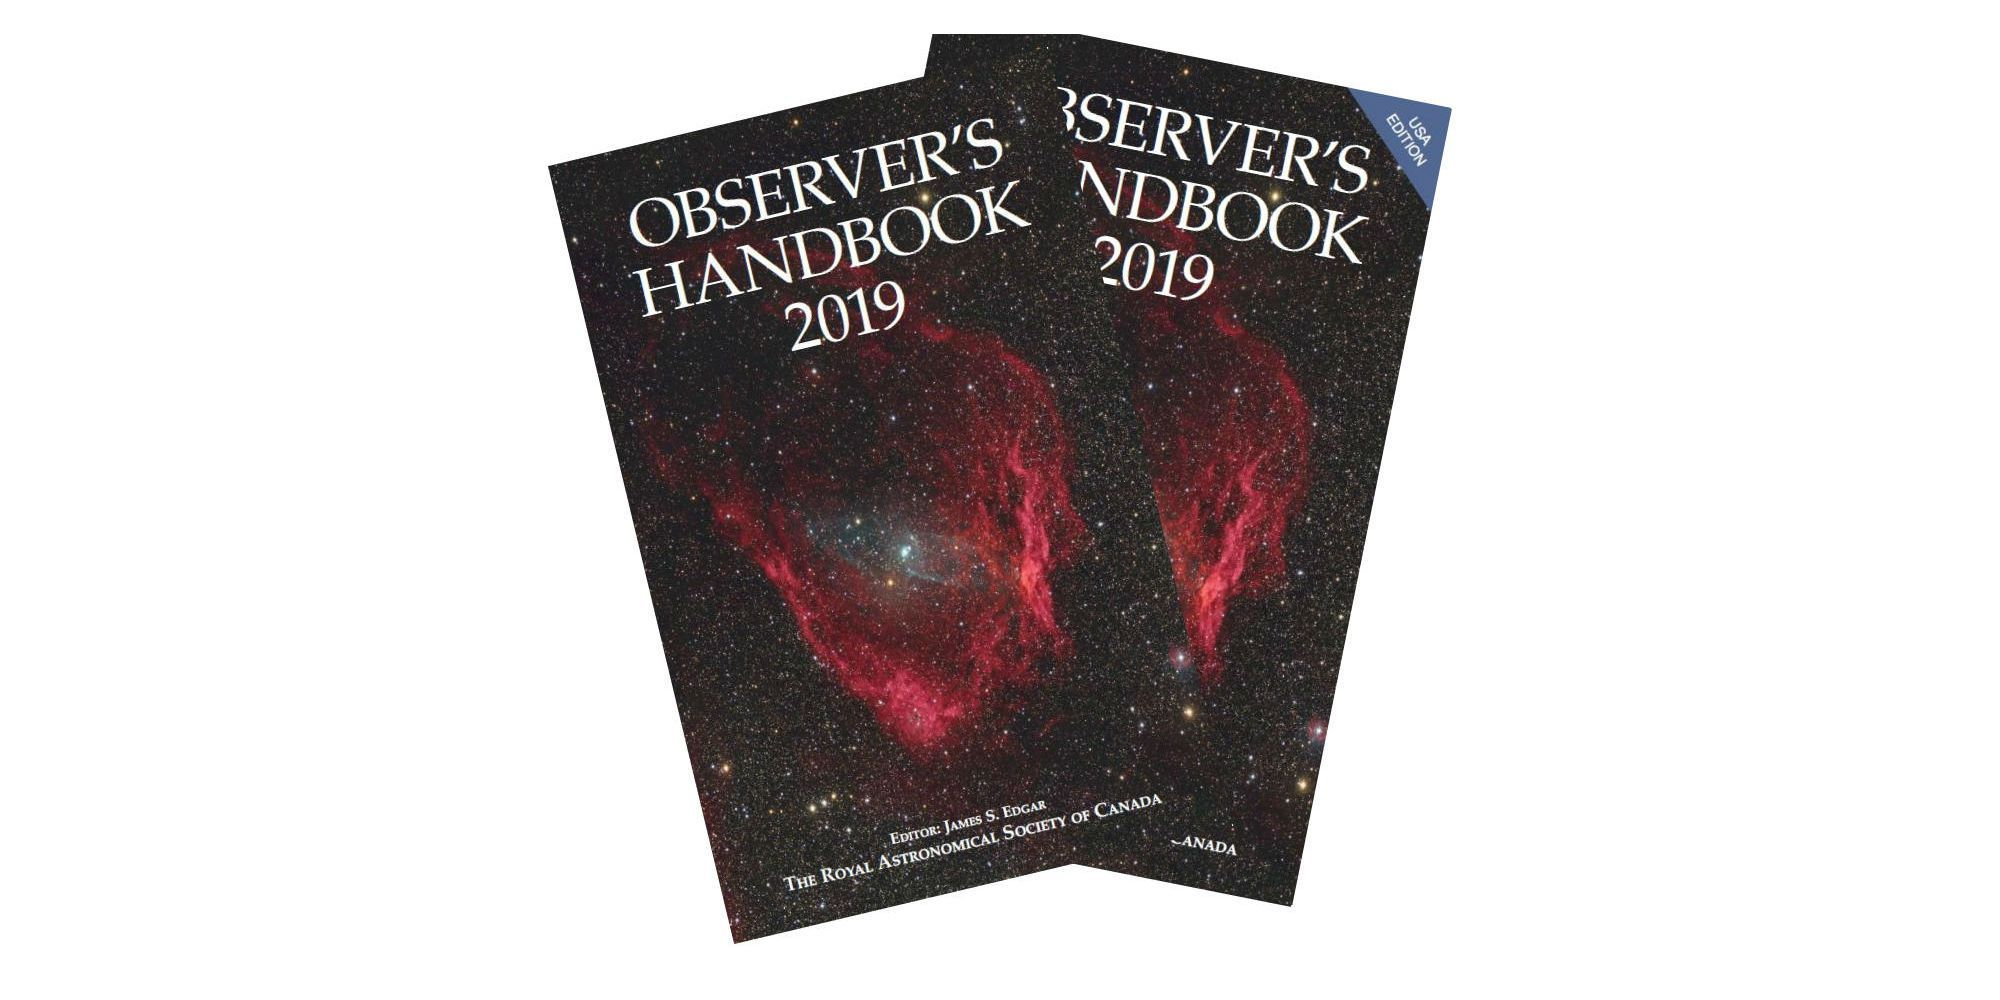 Space Gifts Gifts For Science And Astronomy Lovers